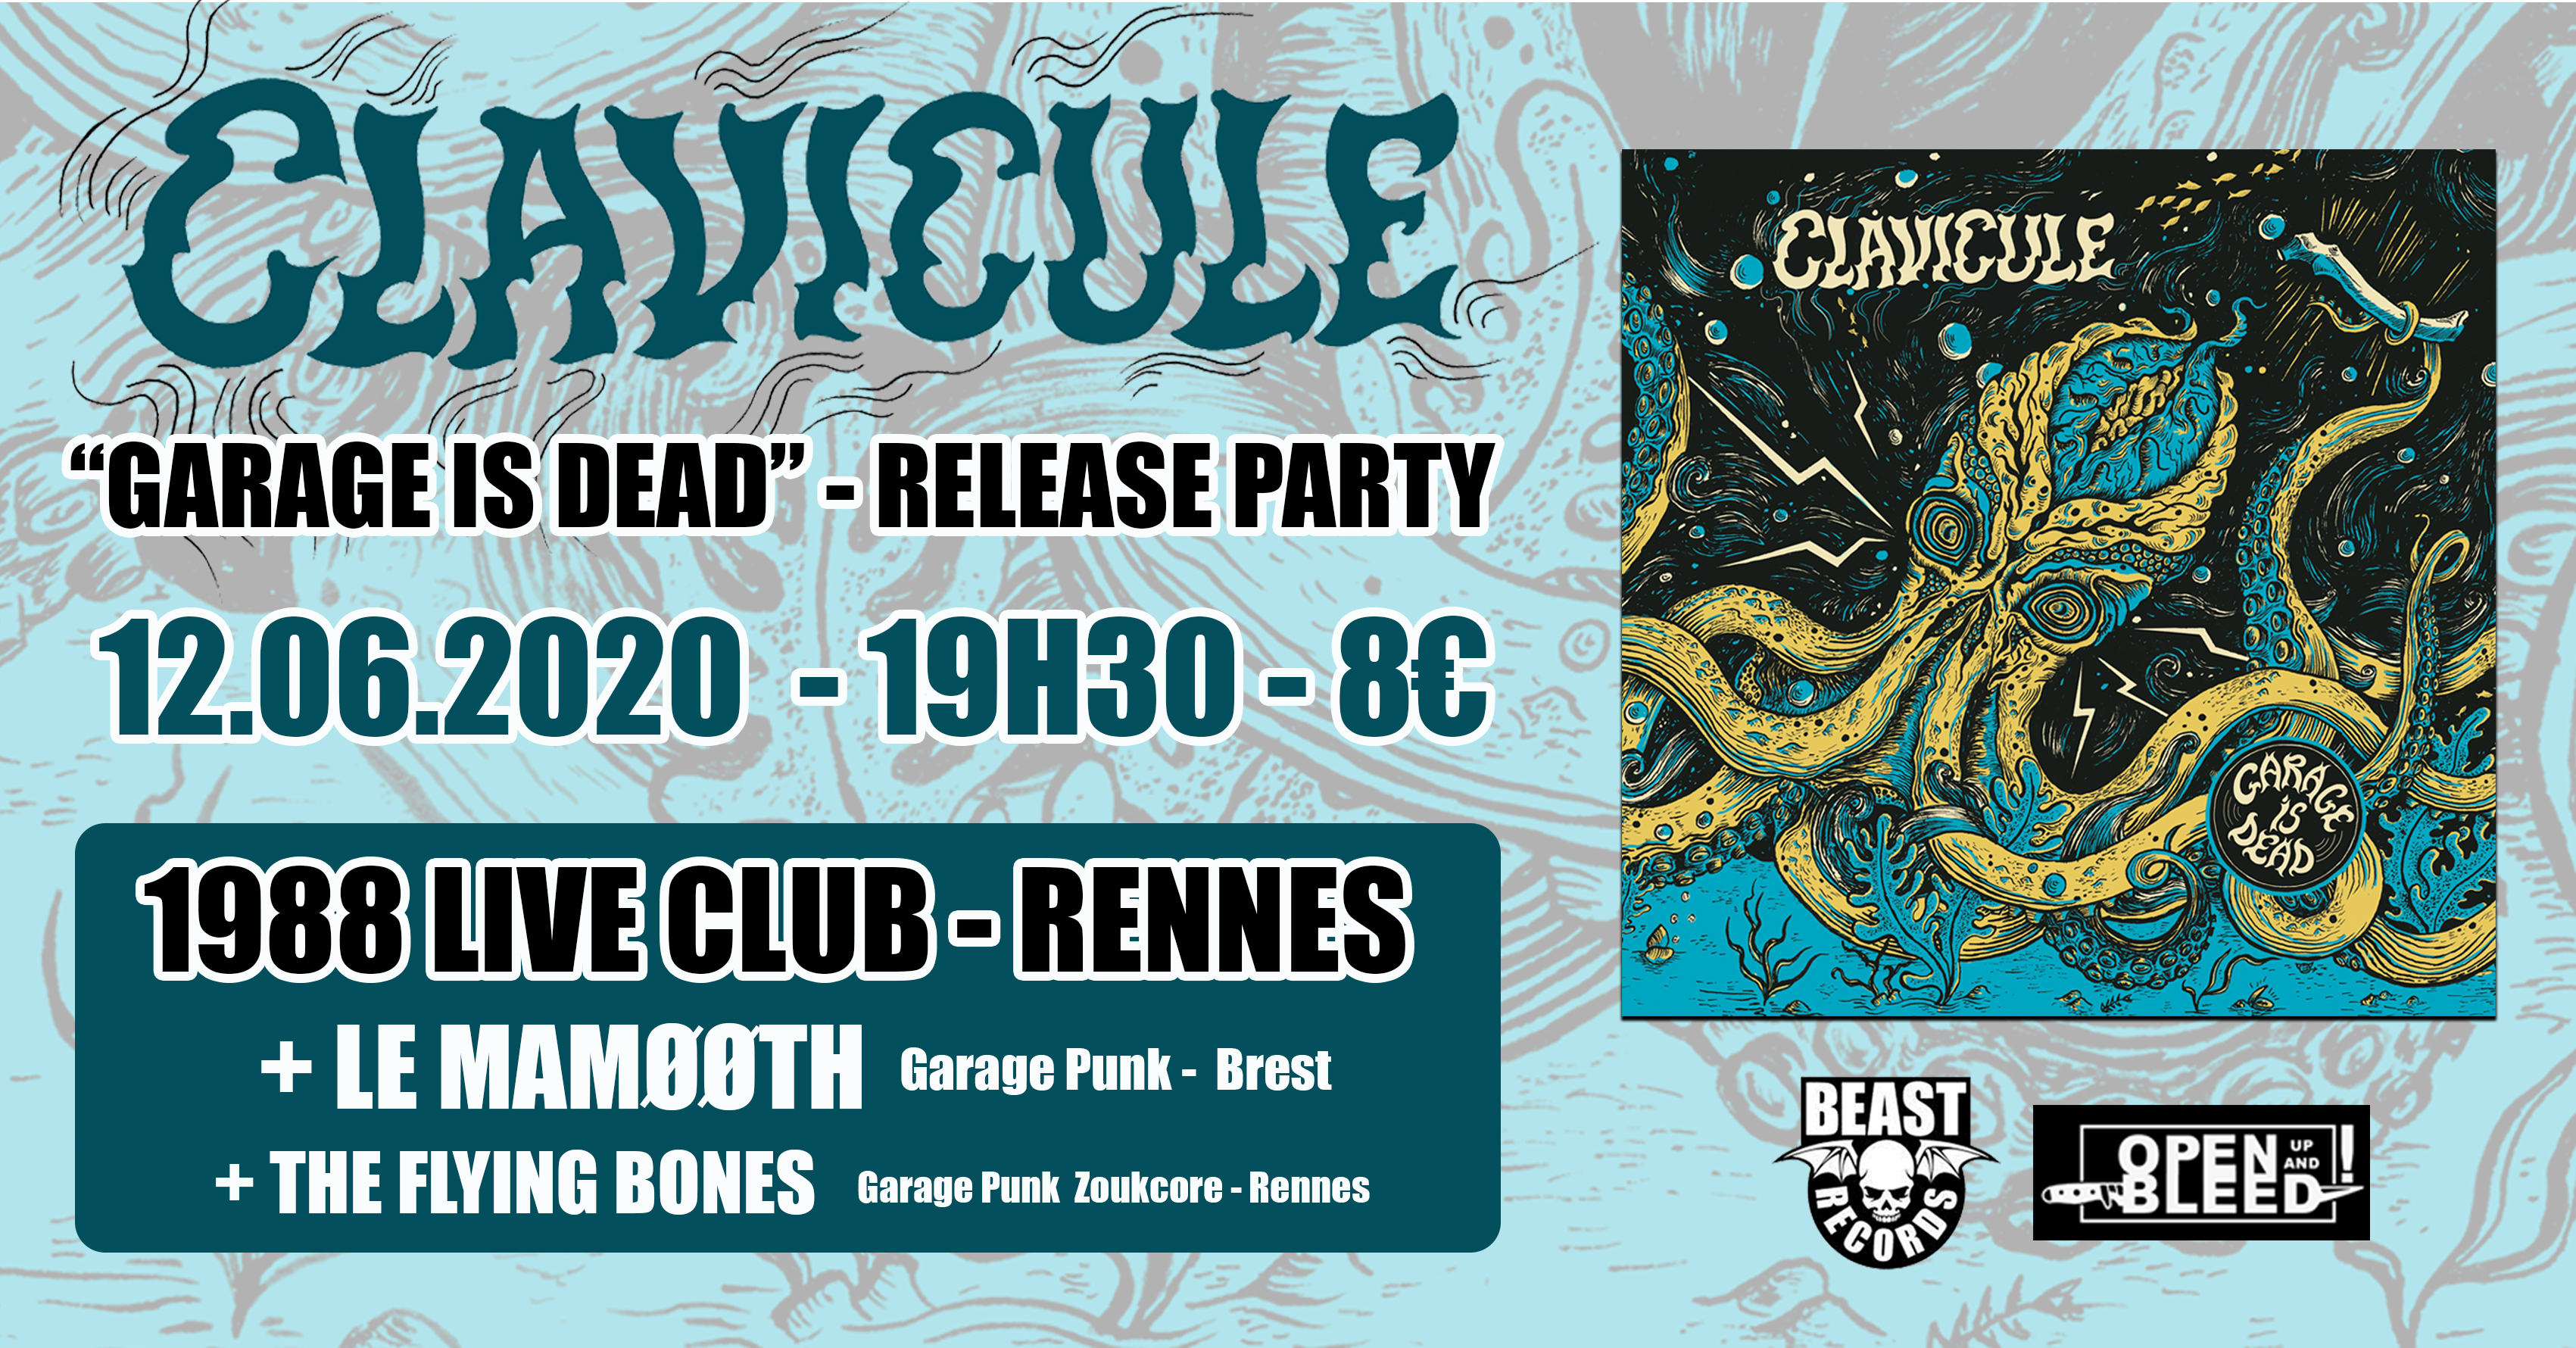 CLAVICULE - RELEASE PARTY